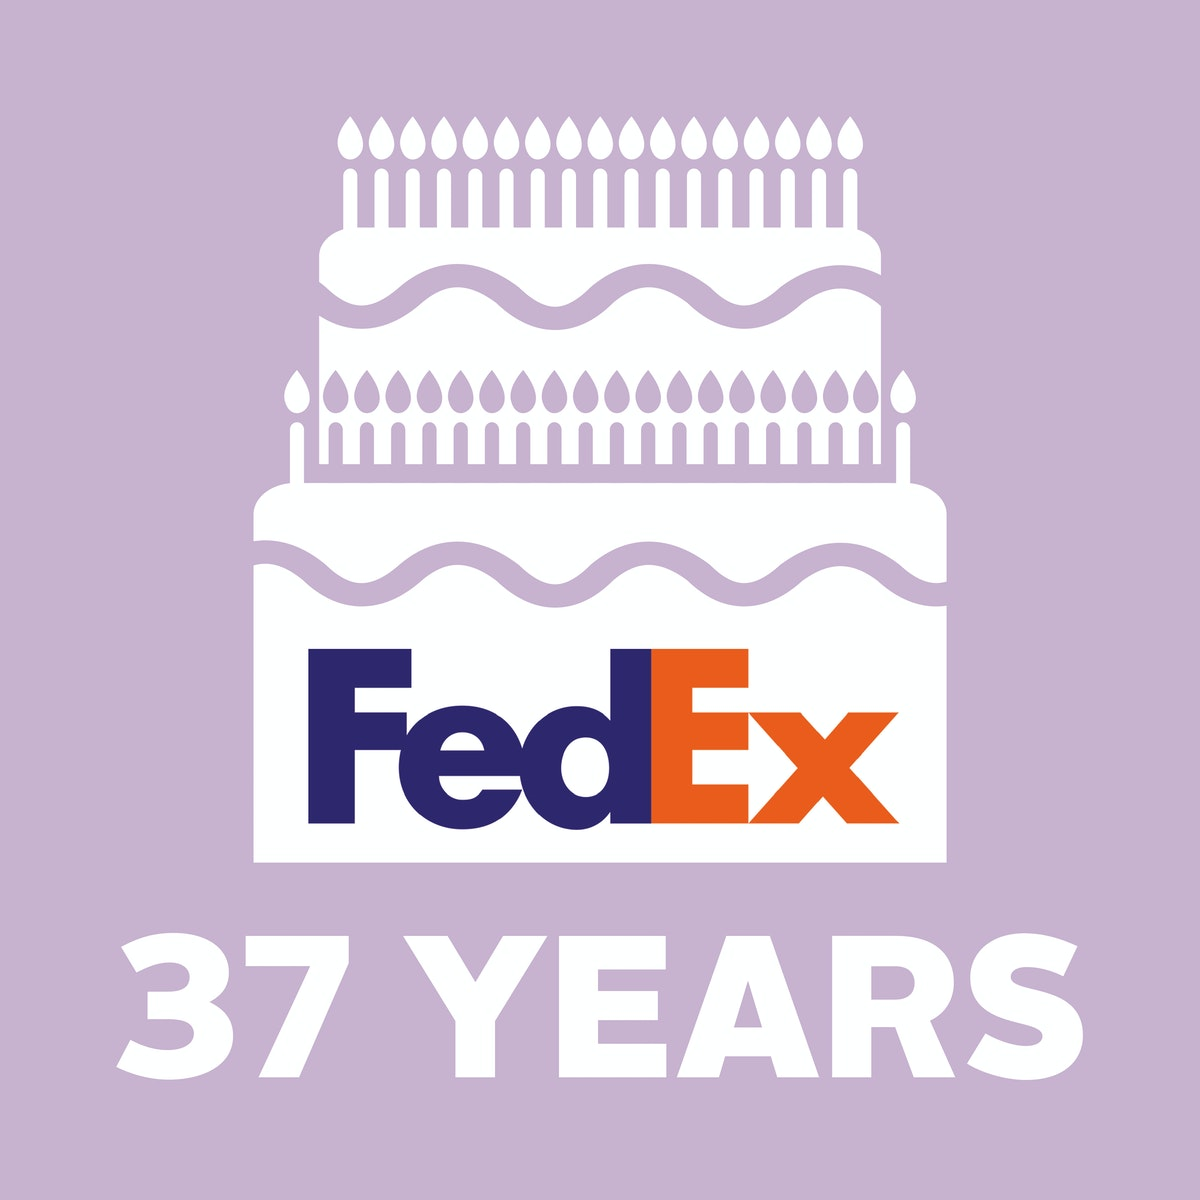 Orbis Flying Eye Hospital Jamaica: Fedex and Orbis have partnered for 37 years